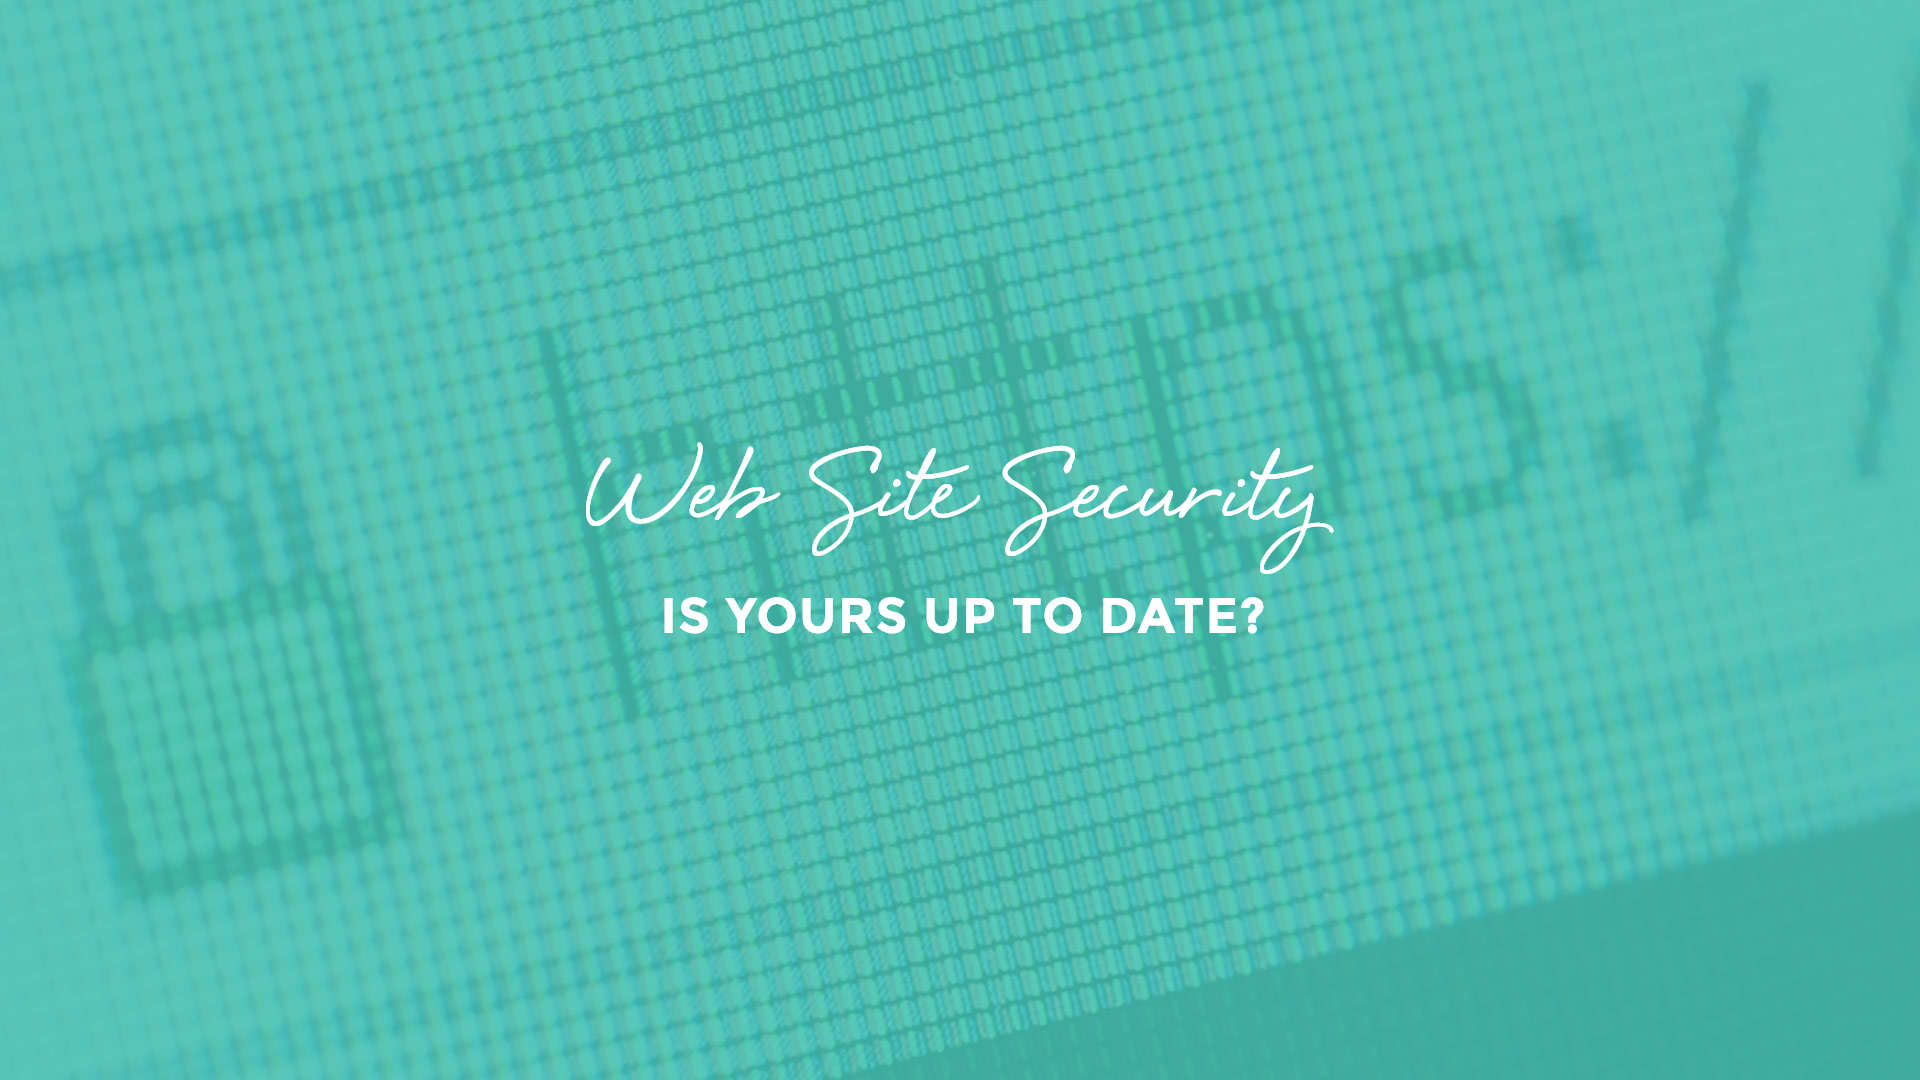 Website Security - Is yours up to date?